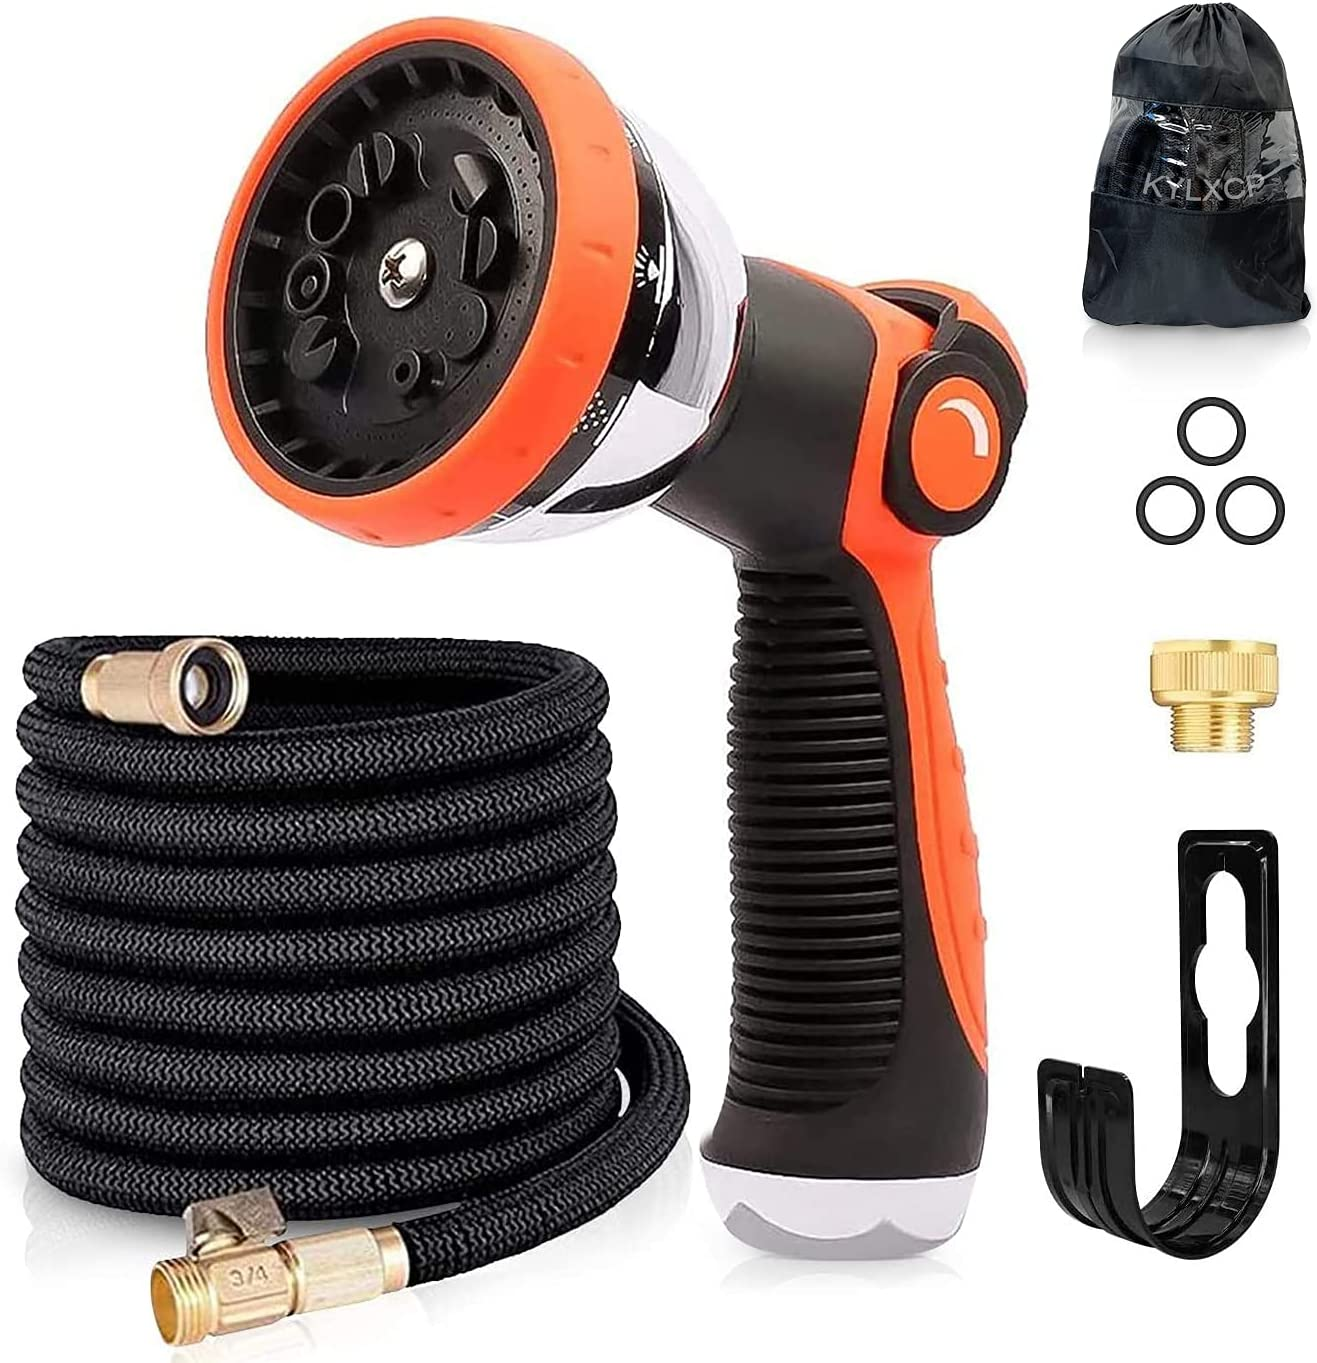 KYLXCP Expandable Garden Hose Superior Strength 13 Layer Flexible Latex, 3/4 Inch Solid Brass Fittings, Extra Strength Fabric 3 Times Expanding Hose, Water Spray Nozzle in 10 Working Modes.